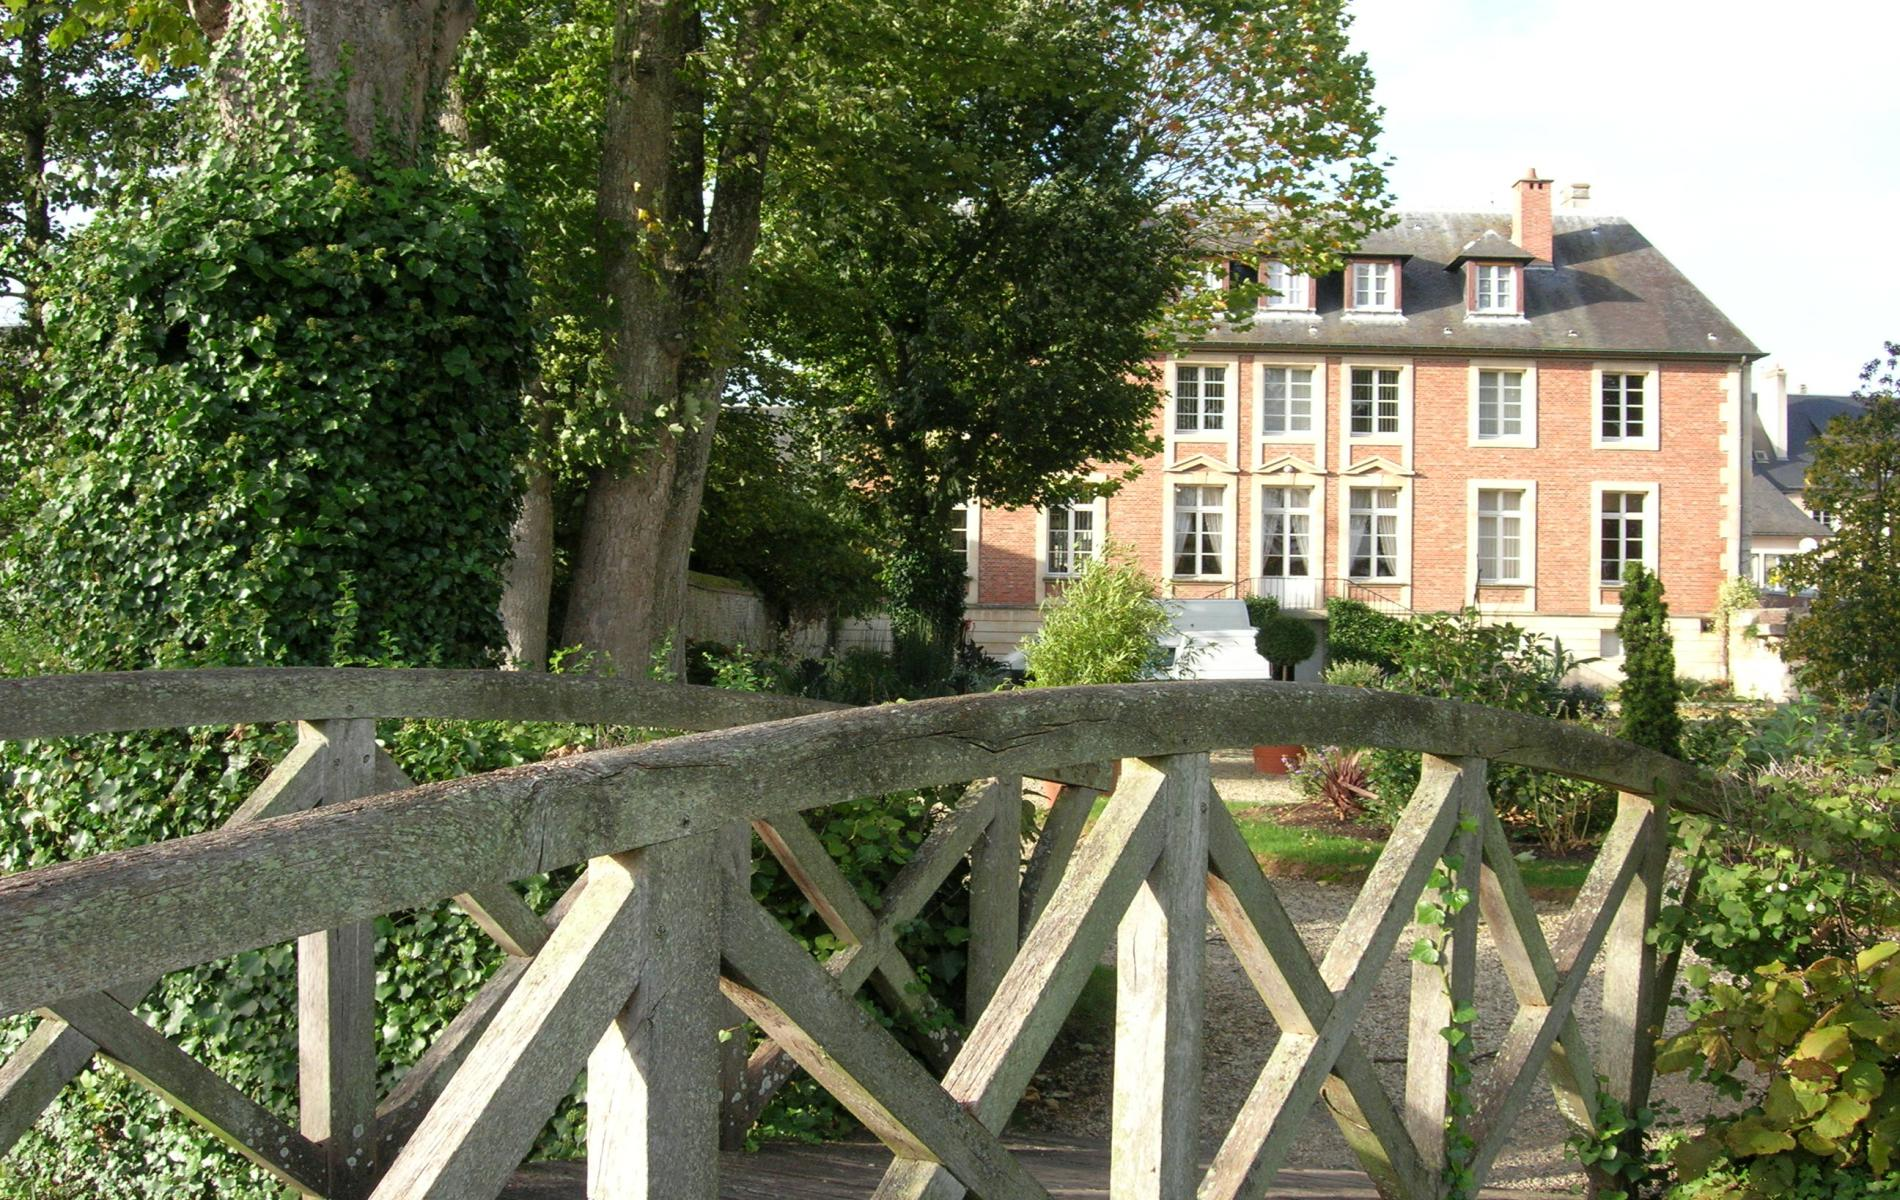 Hotel pont l 39 eveque next to deauville hotel pont l 39 eveque - Piscine pont l eveque ...